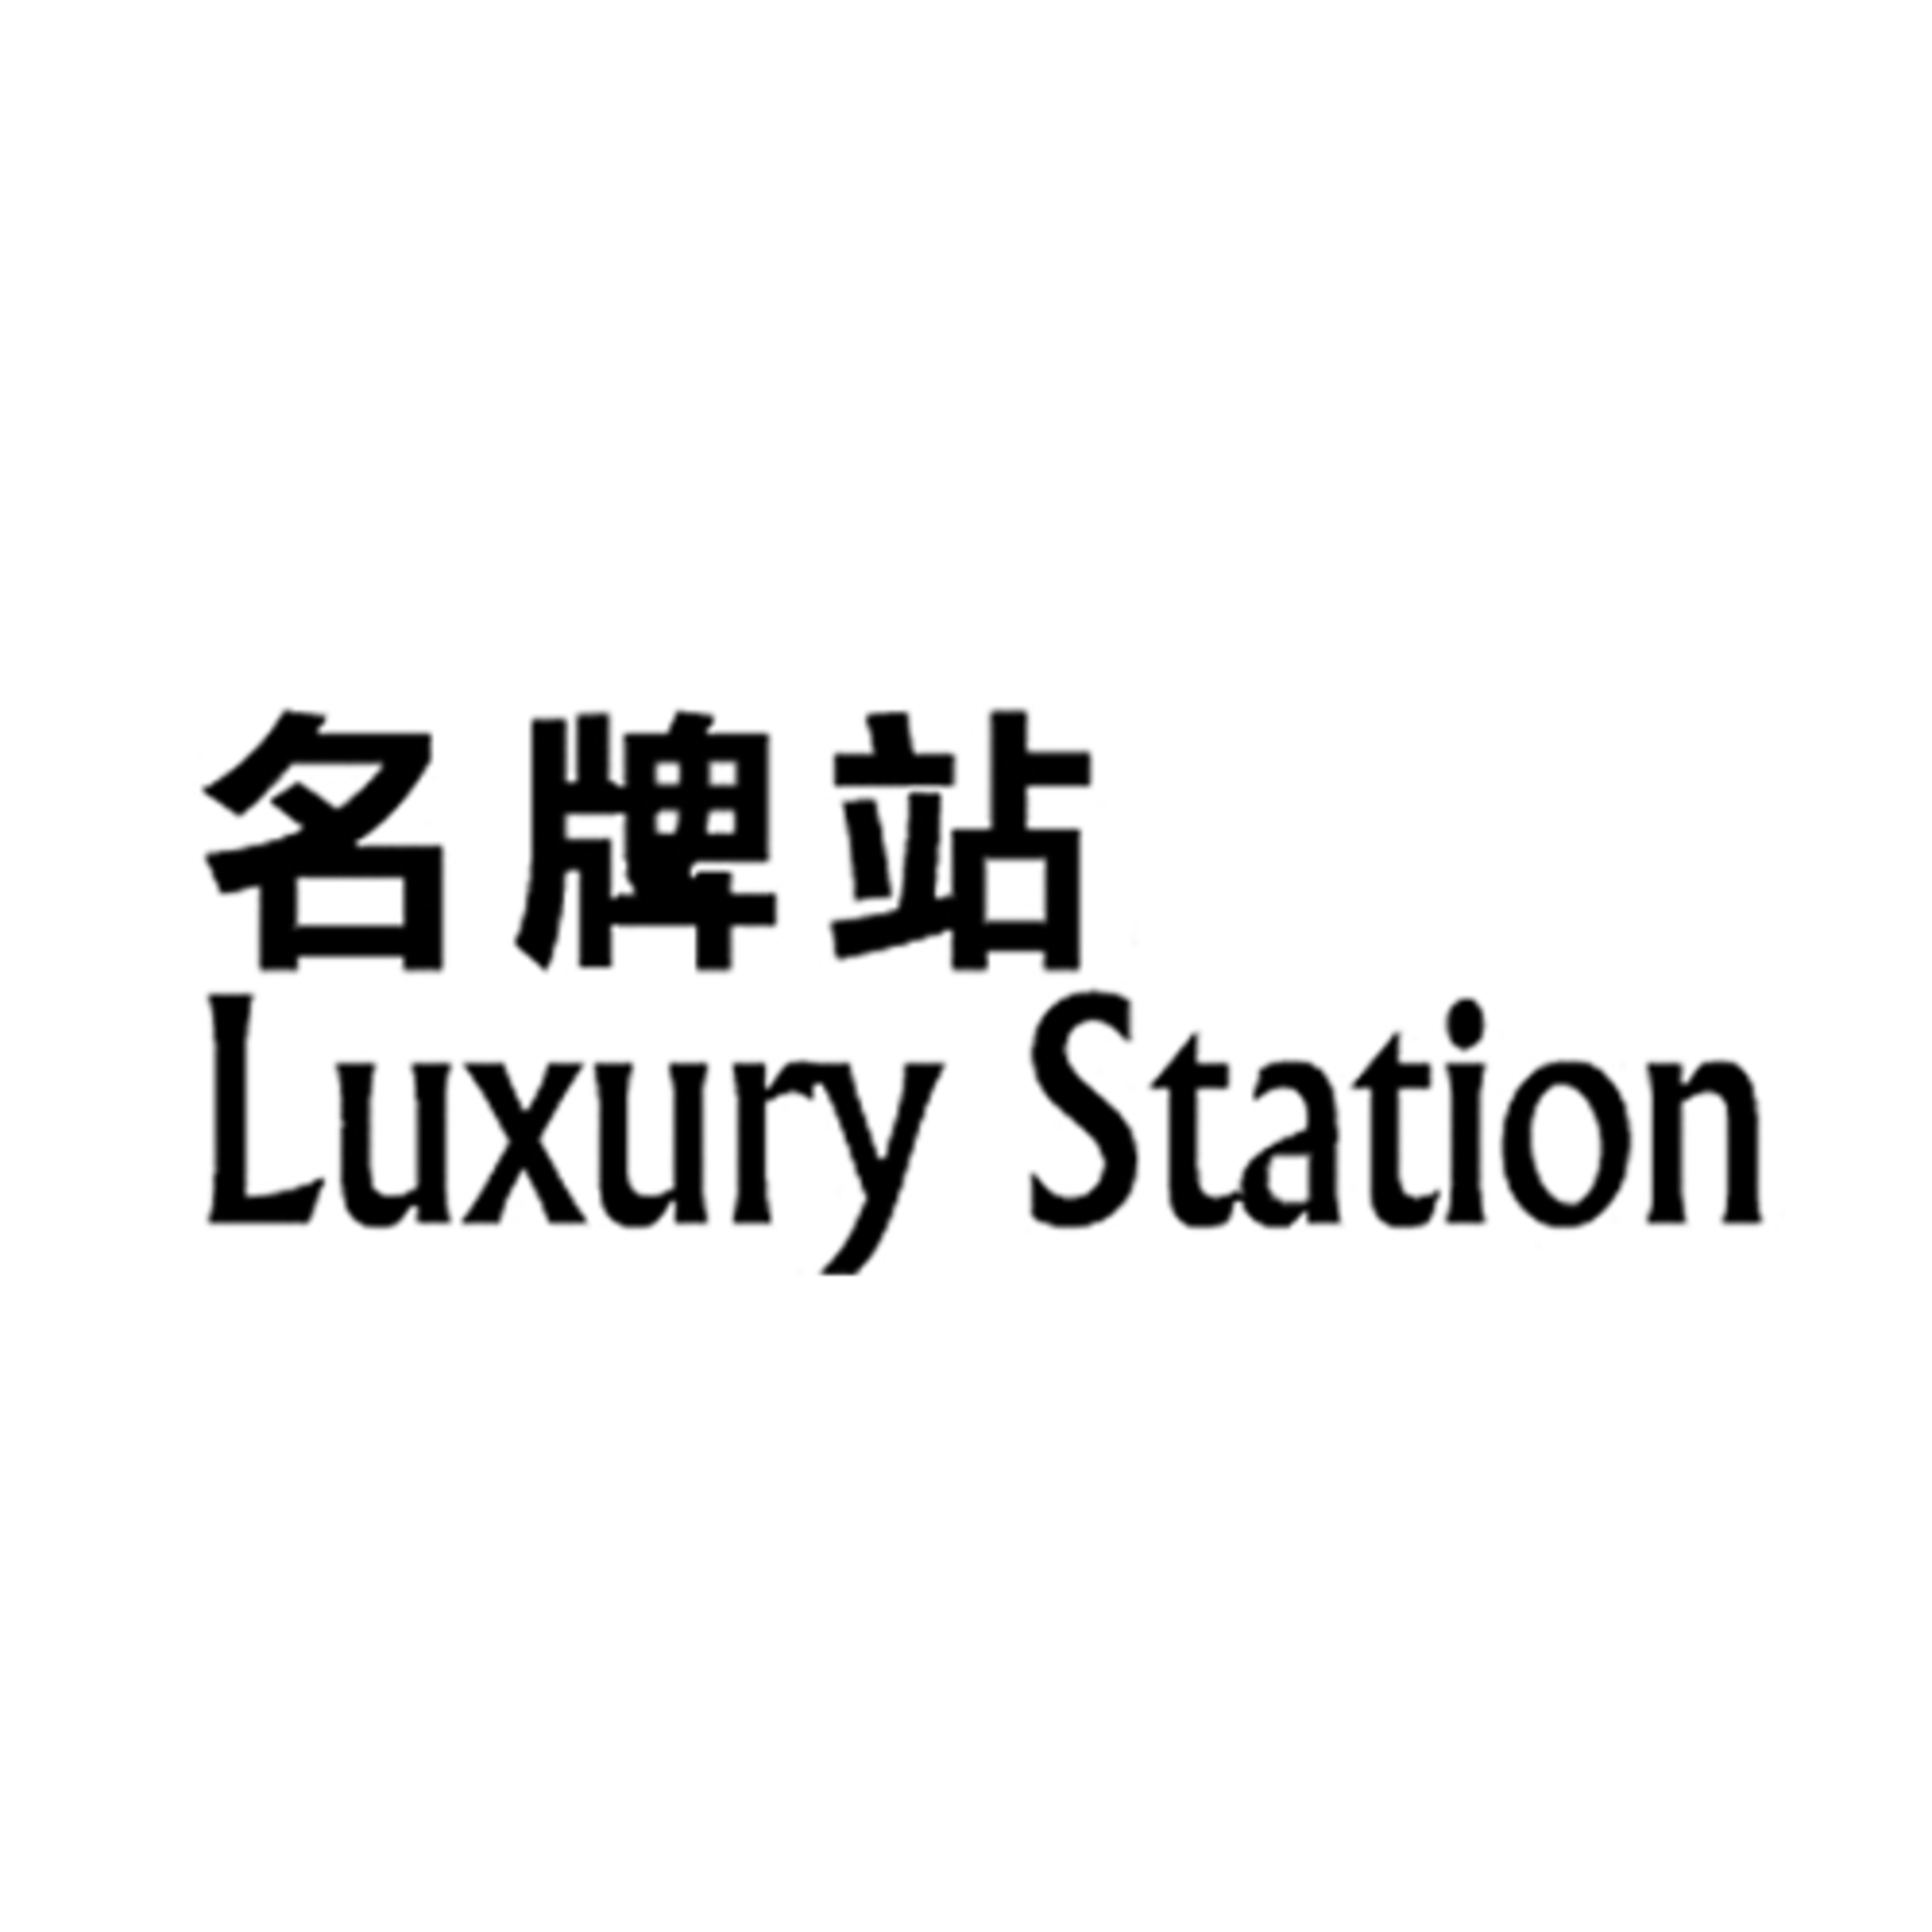 luxury station- company logo